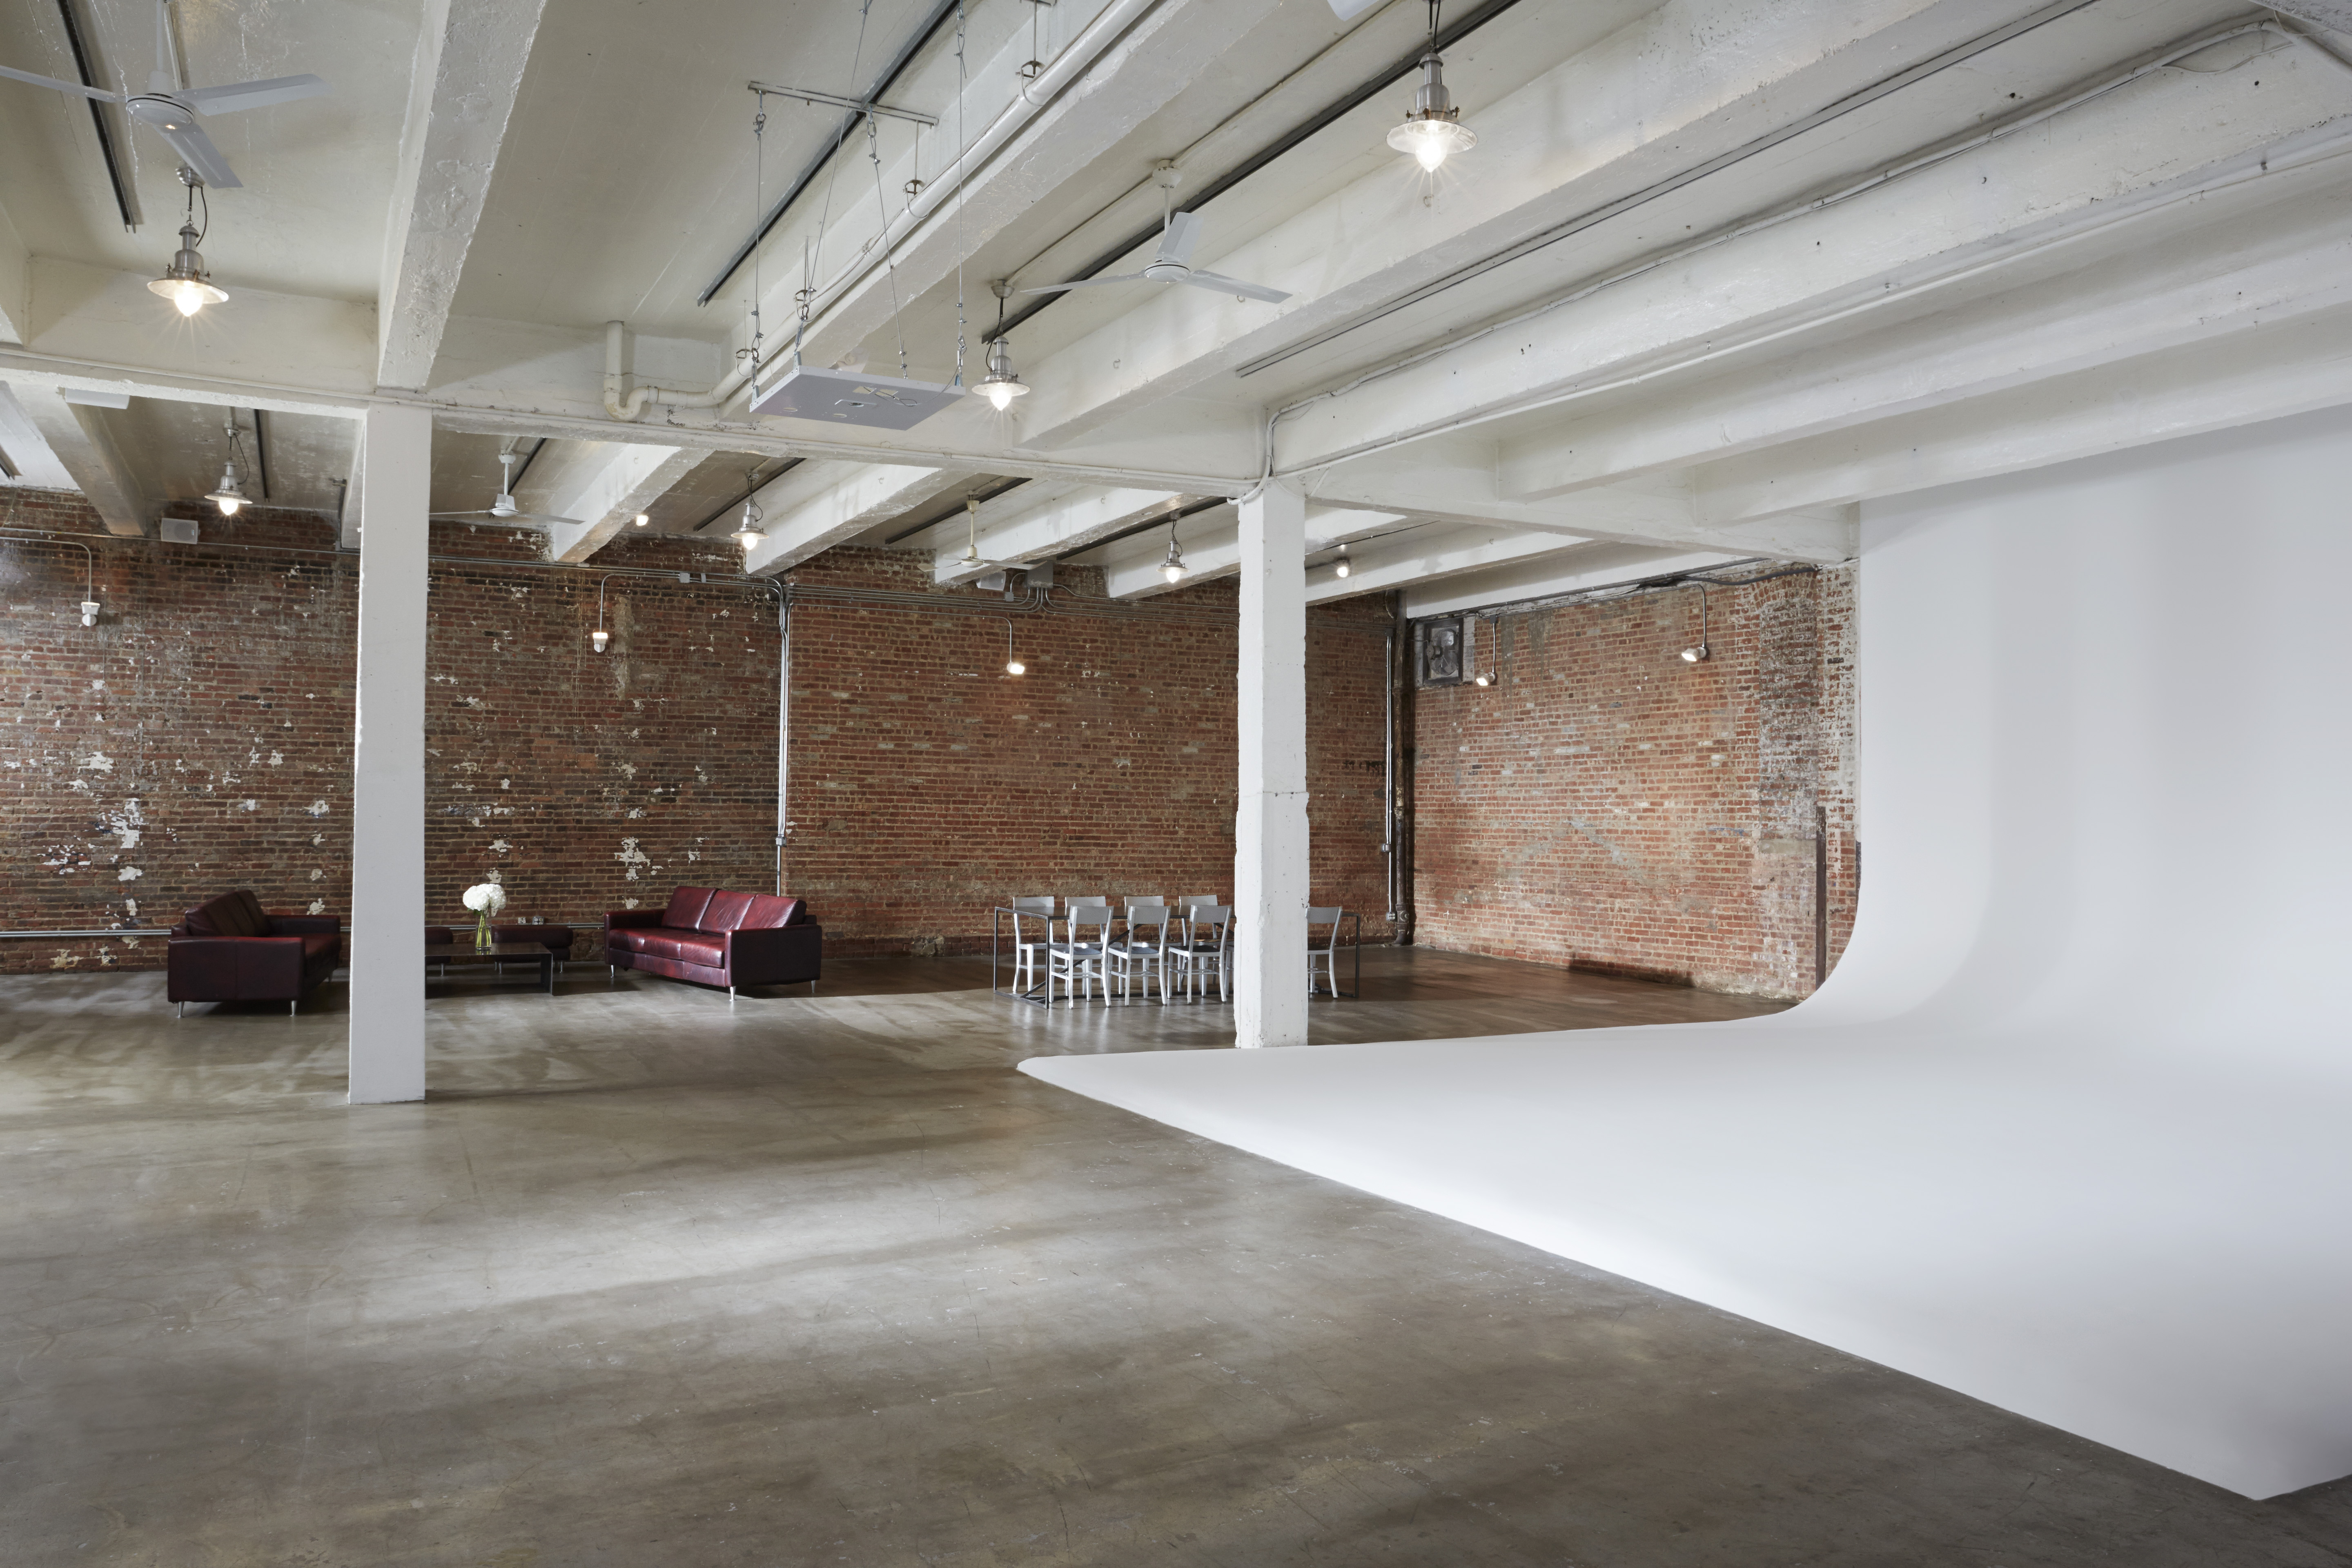 Chelsea Photography Studio and Event Space